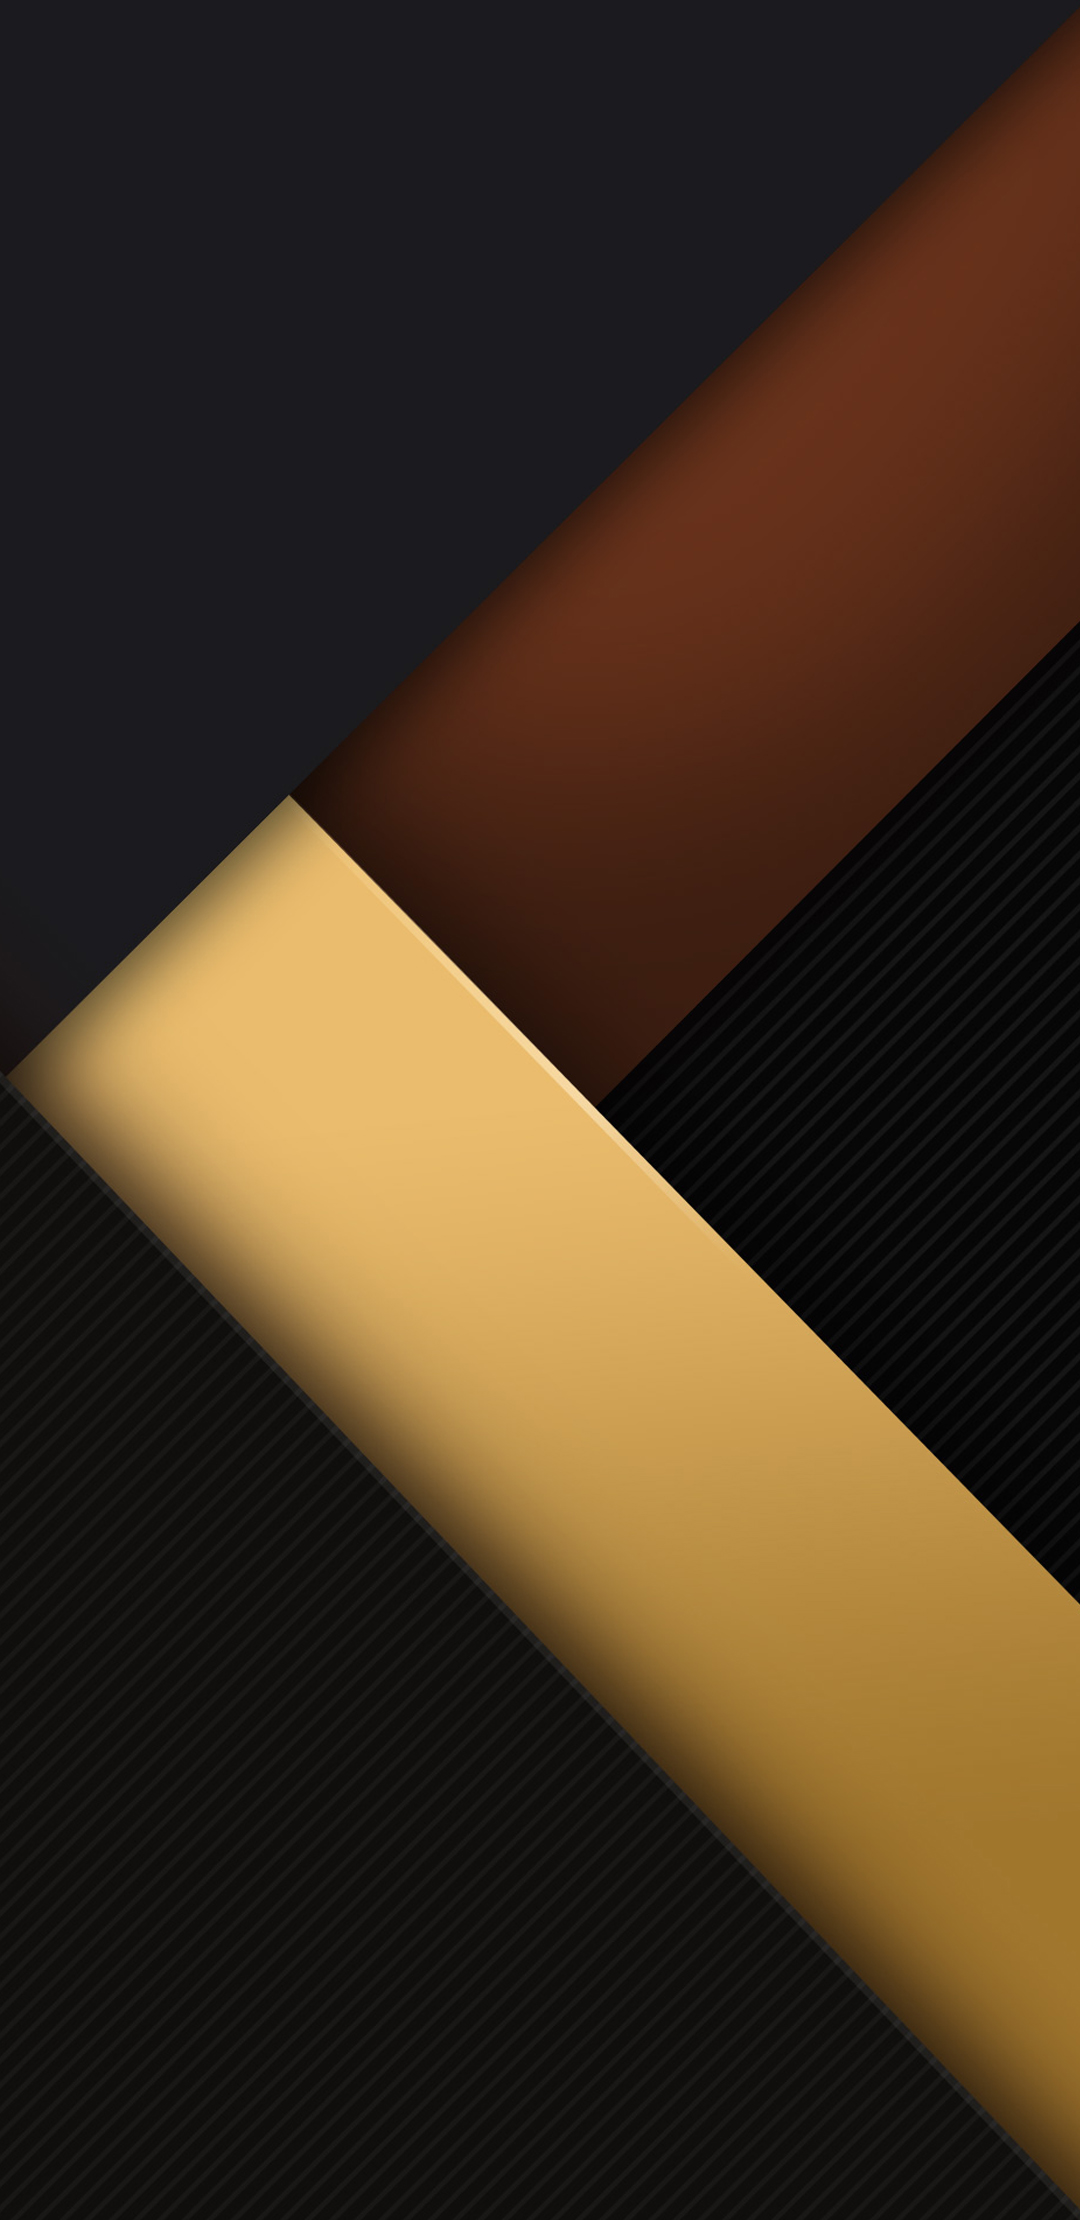 Samsung Galaxy A8 Background With 3d Dark Objects Hd